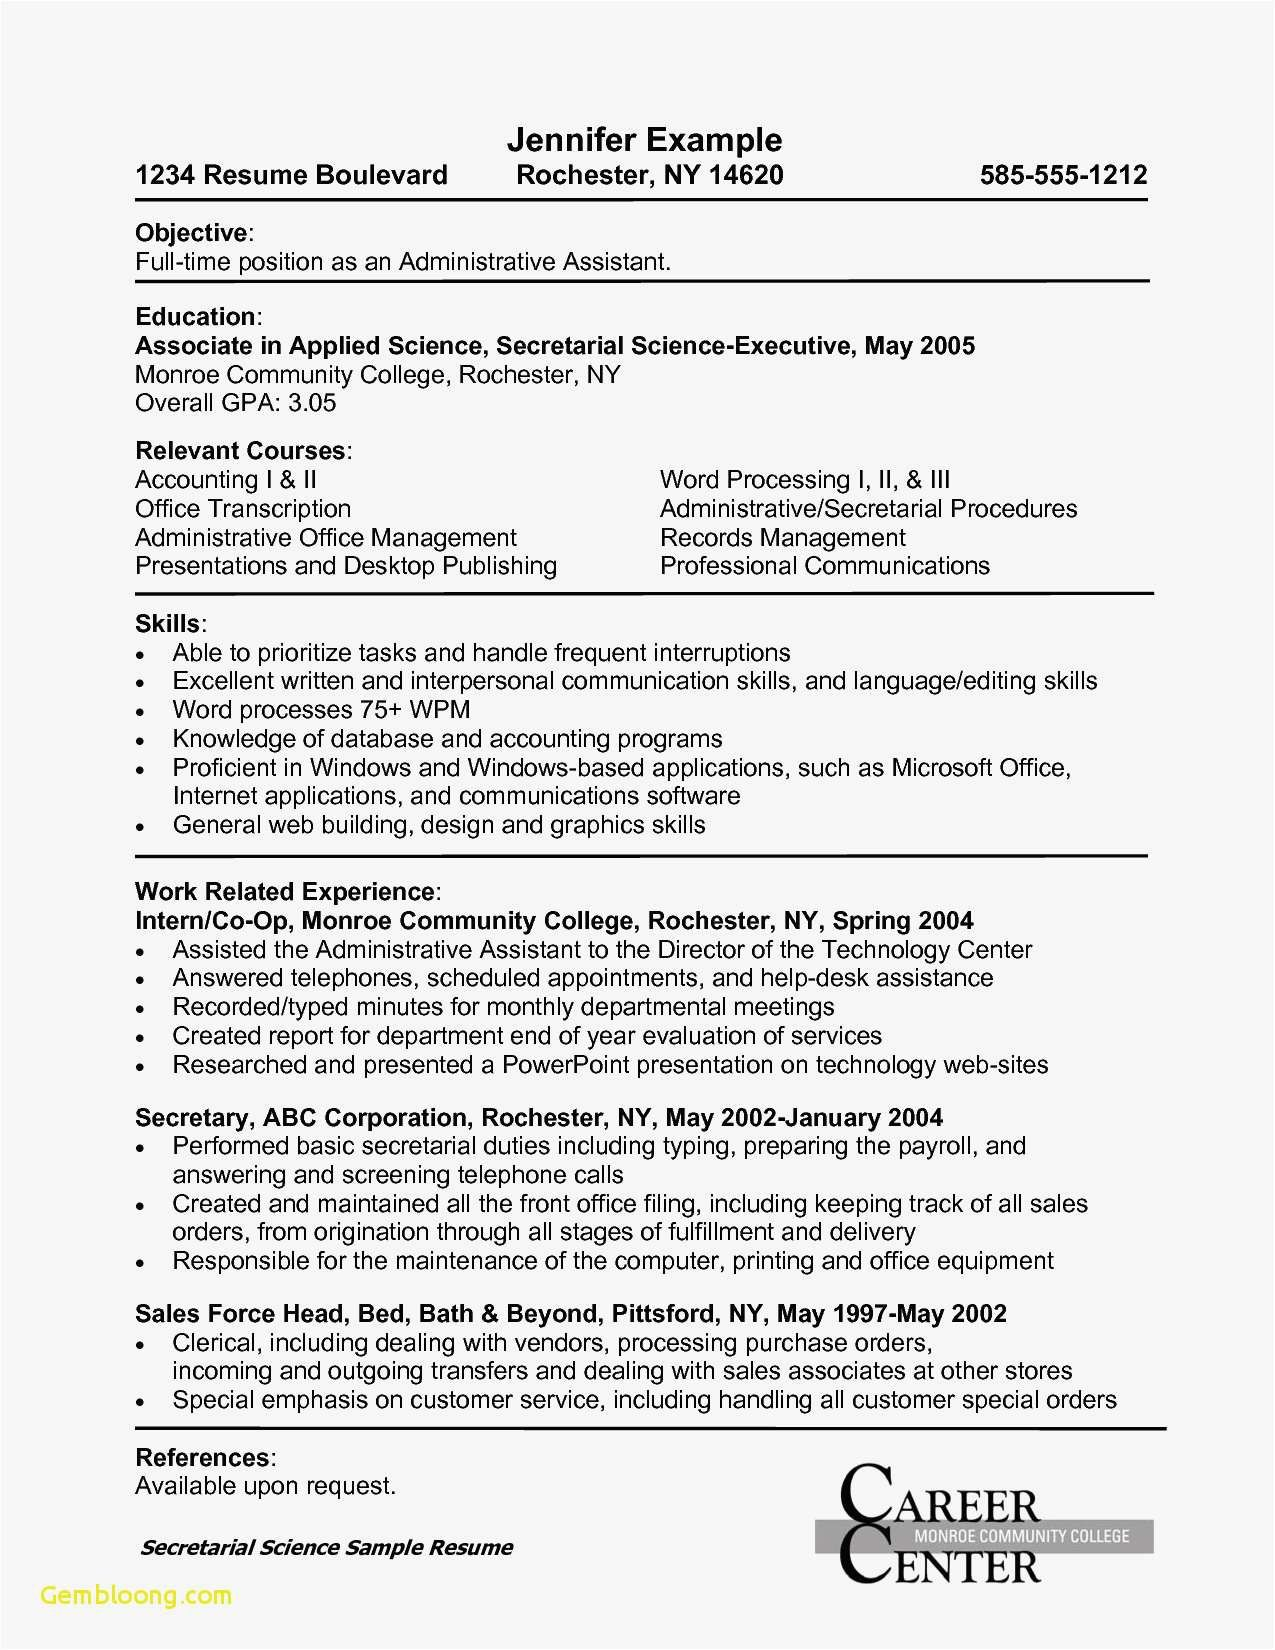 25+ Sample Cover Letter For Administrative Assistant in